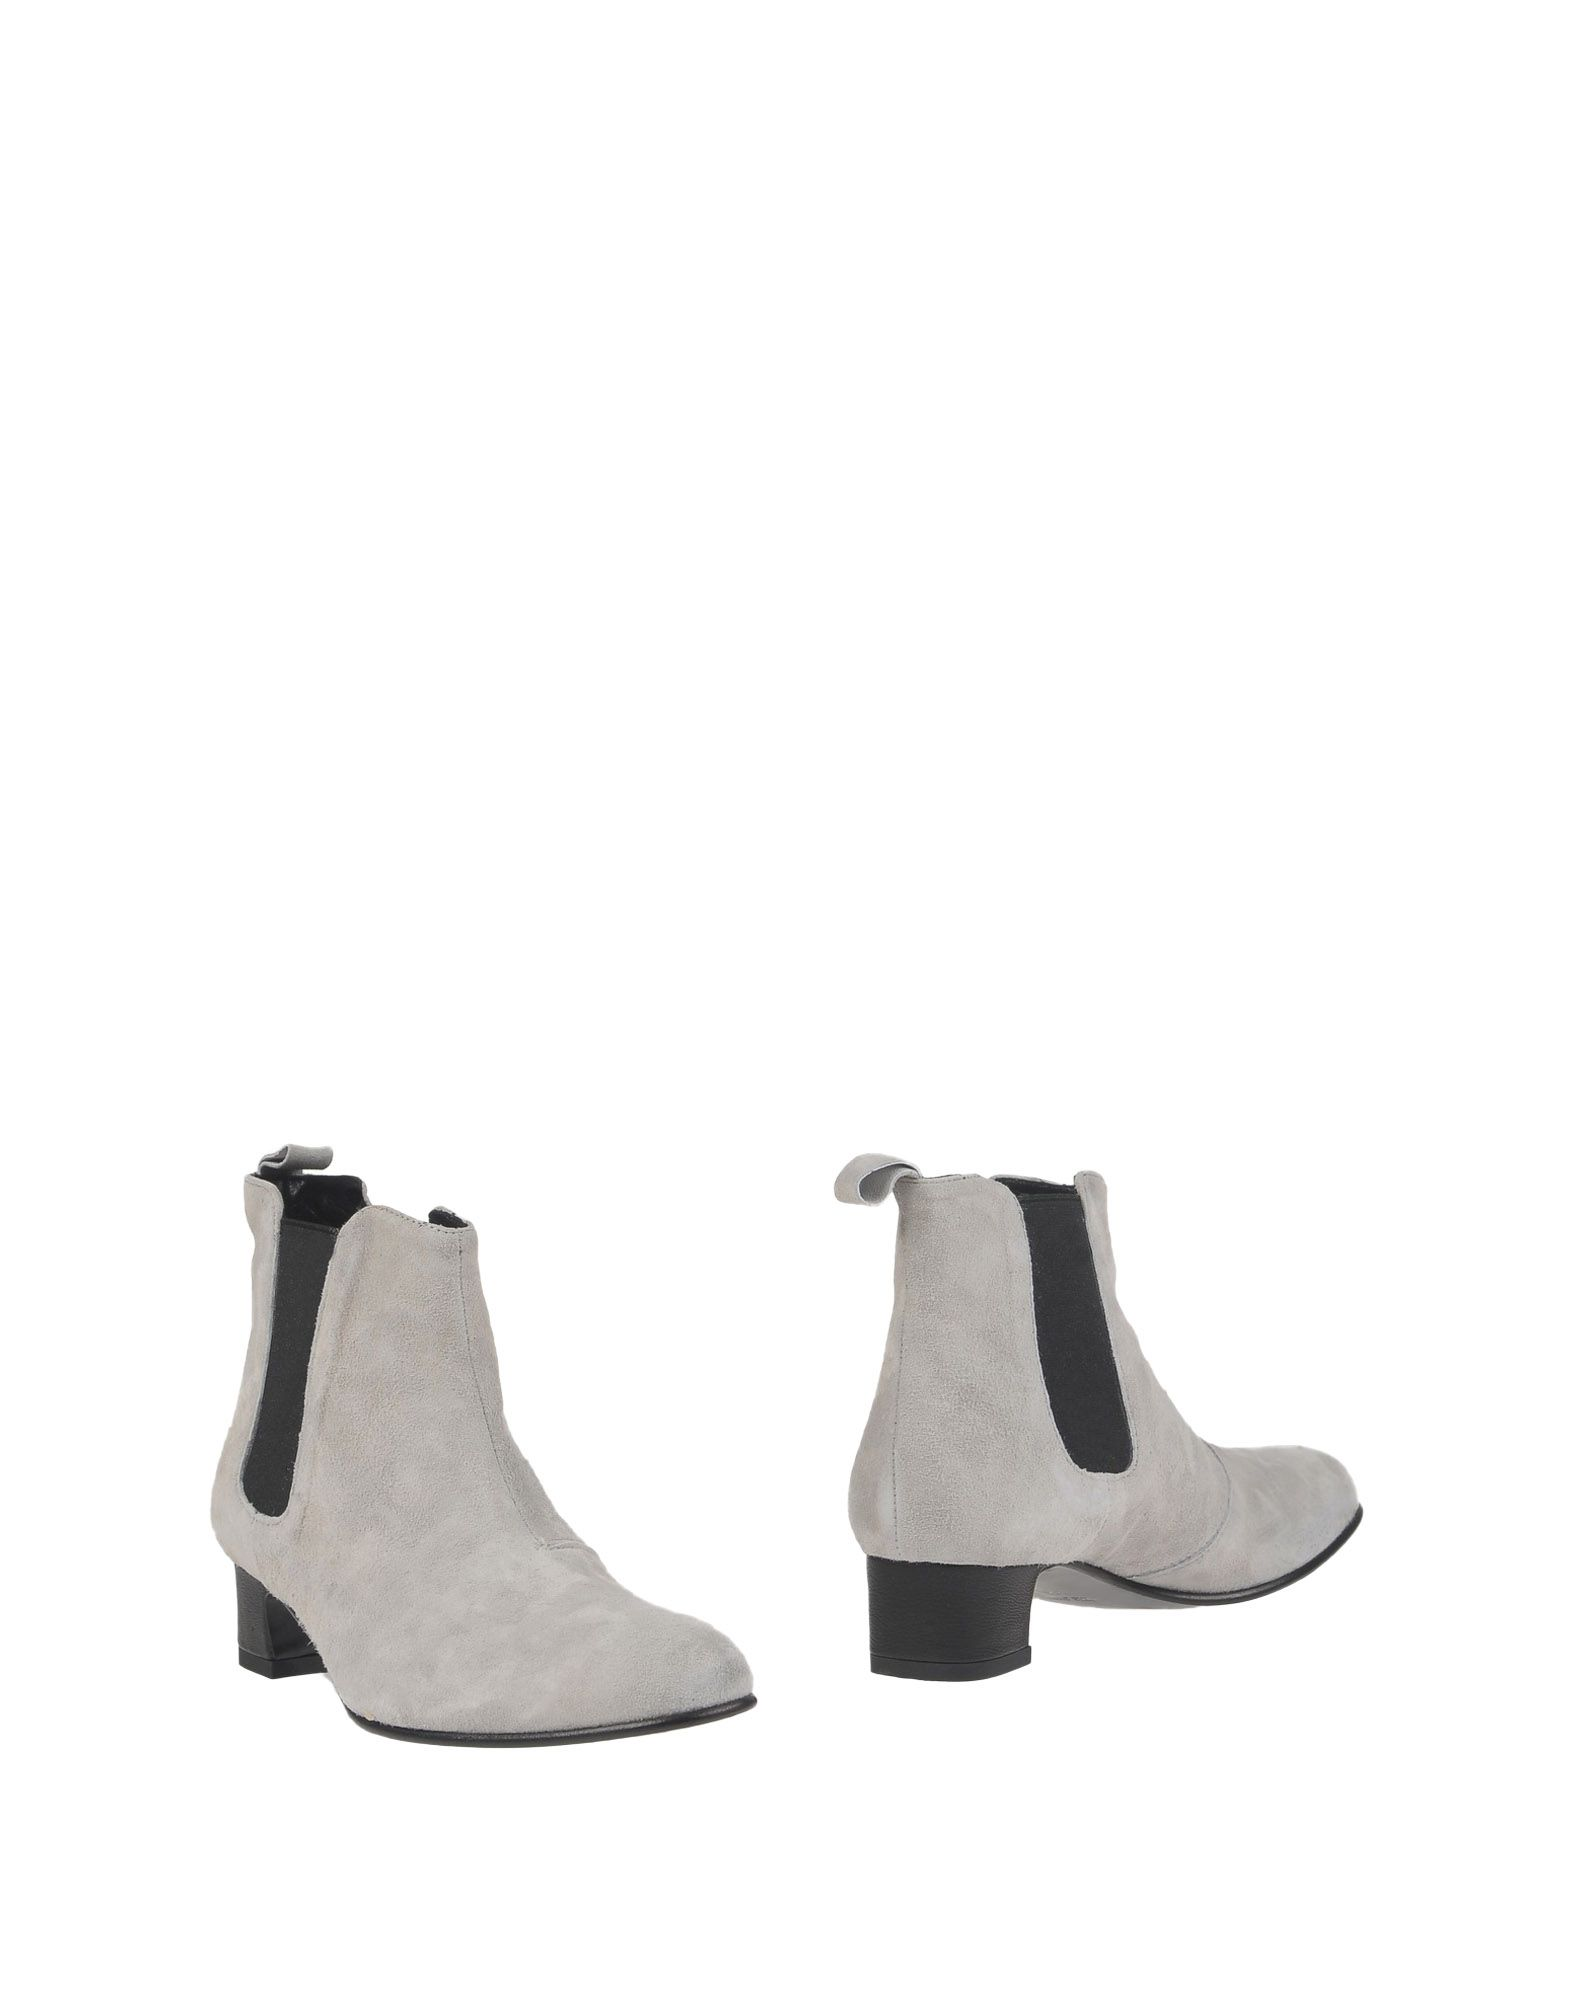 Chelsea Boots Never Ever Donna - 11279134KX